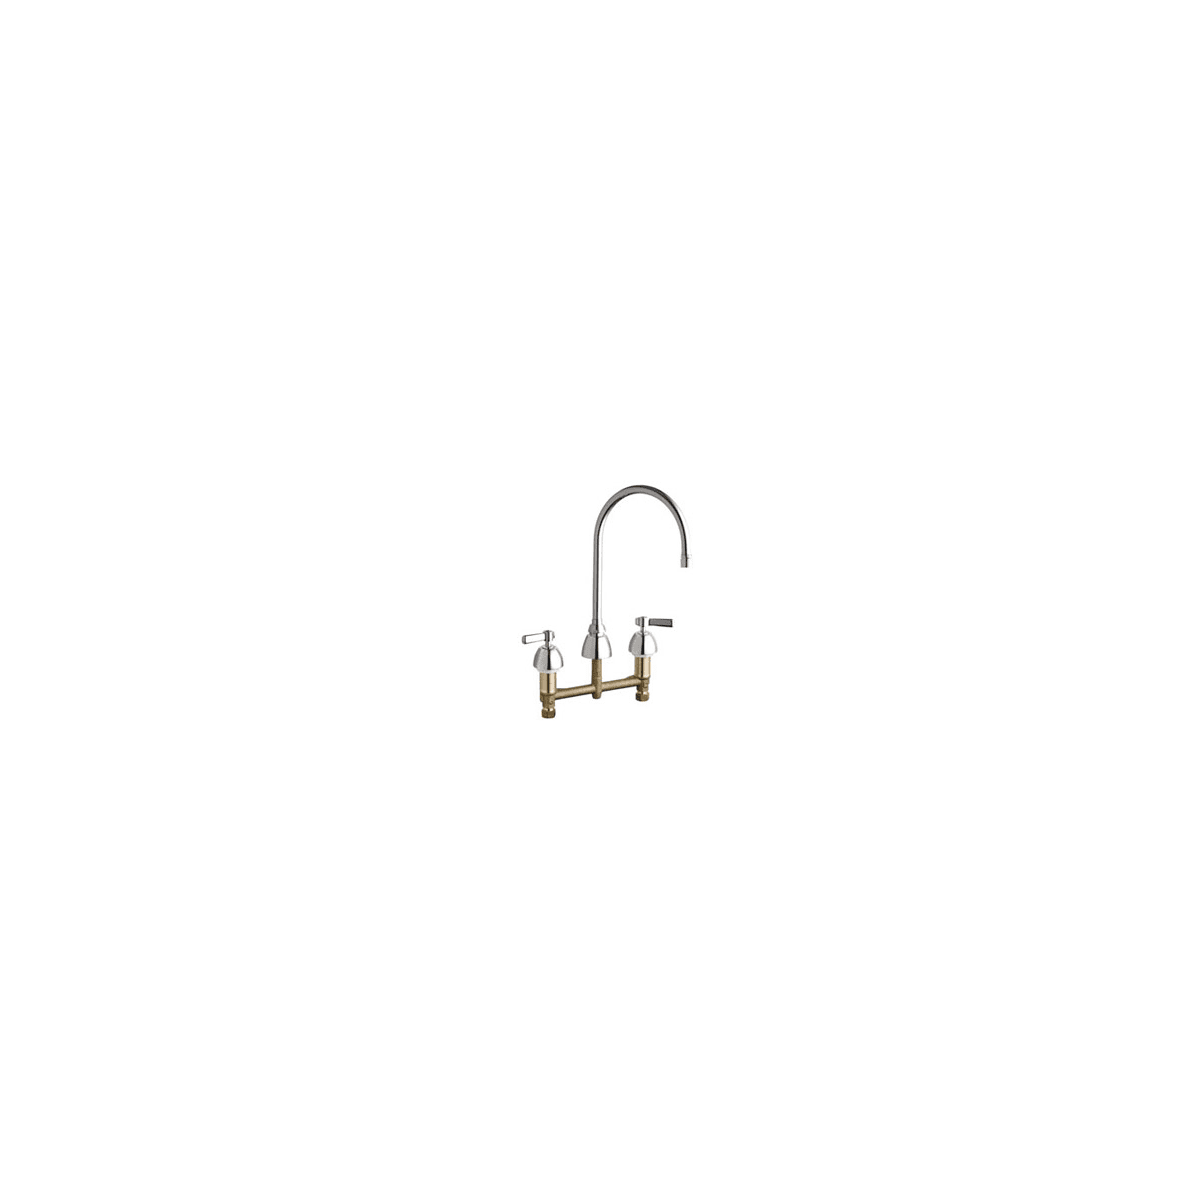 Chicago Faucets 201 Agn8ae2805fab Chrome Commercial Grade High Arch Kitchen Faucet With Lever Handles 8 Centers Eco Friendly Flow Rate